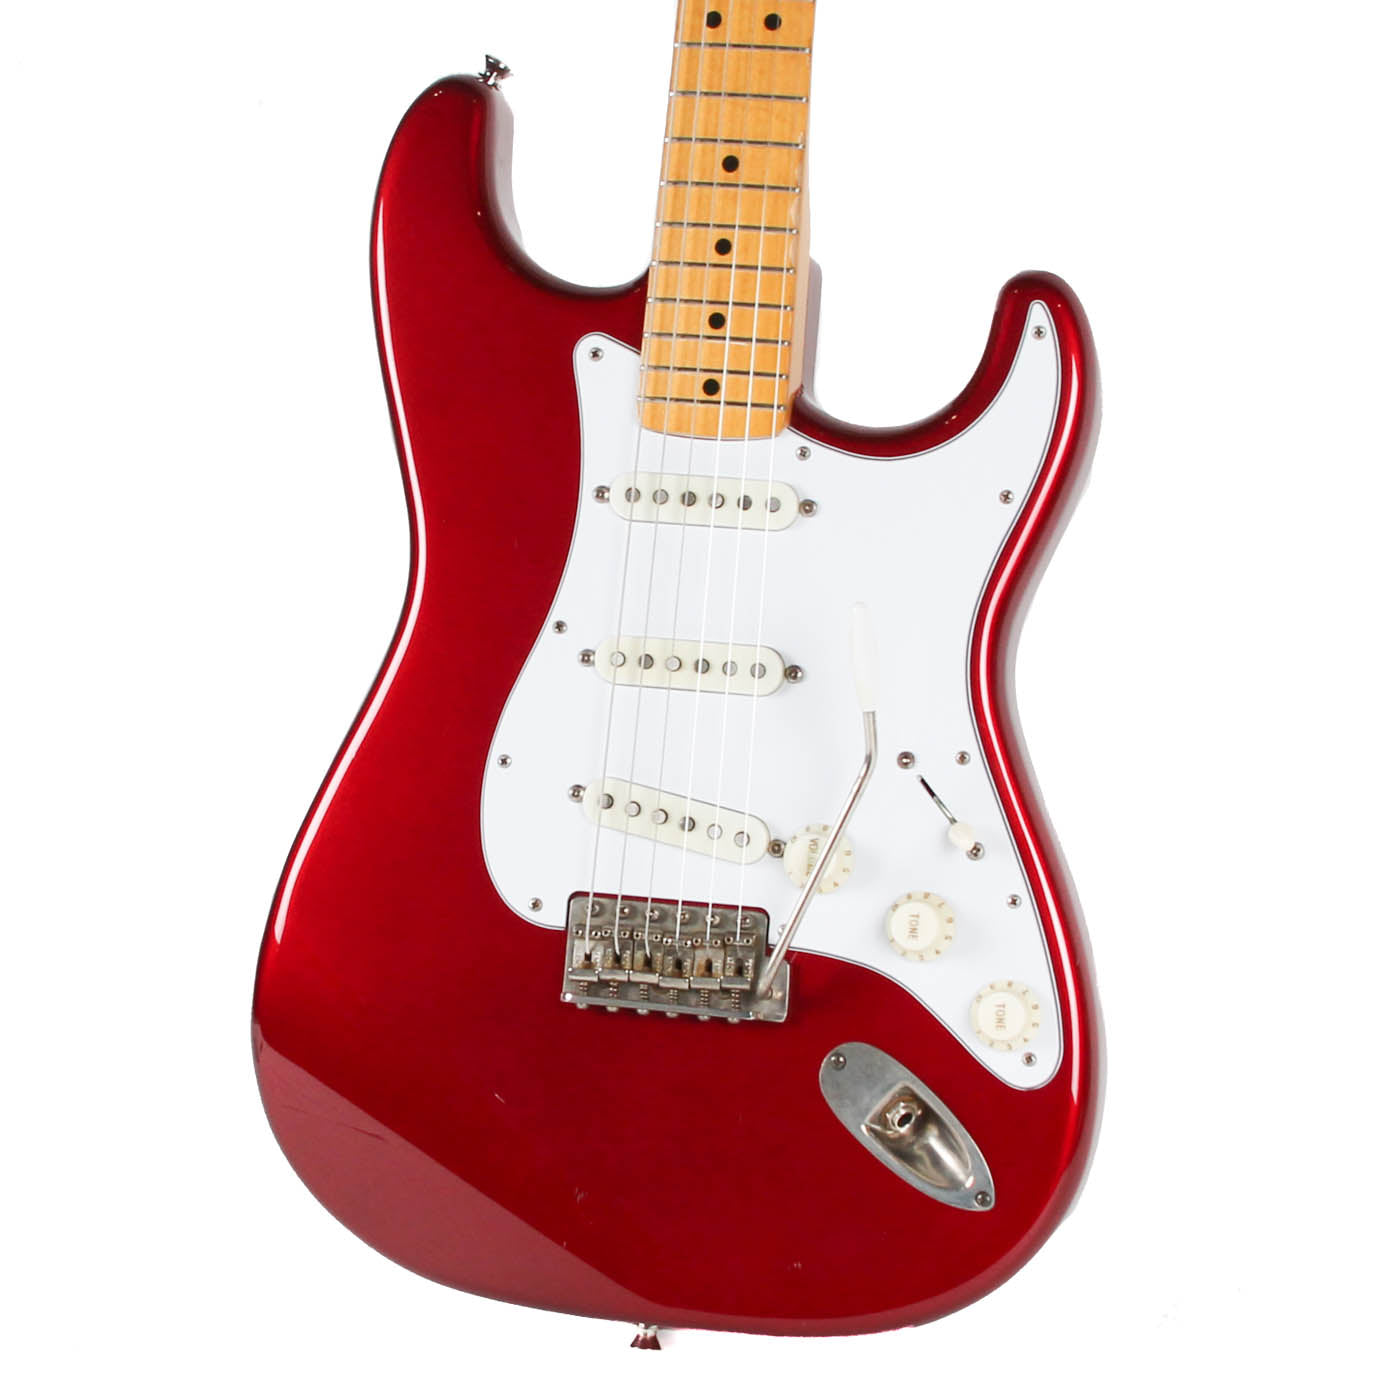 1994 Fender MIJ 70s Stratocaster Reissue Candy Apple Red image 5